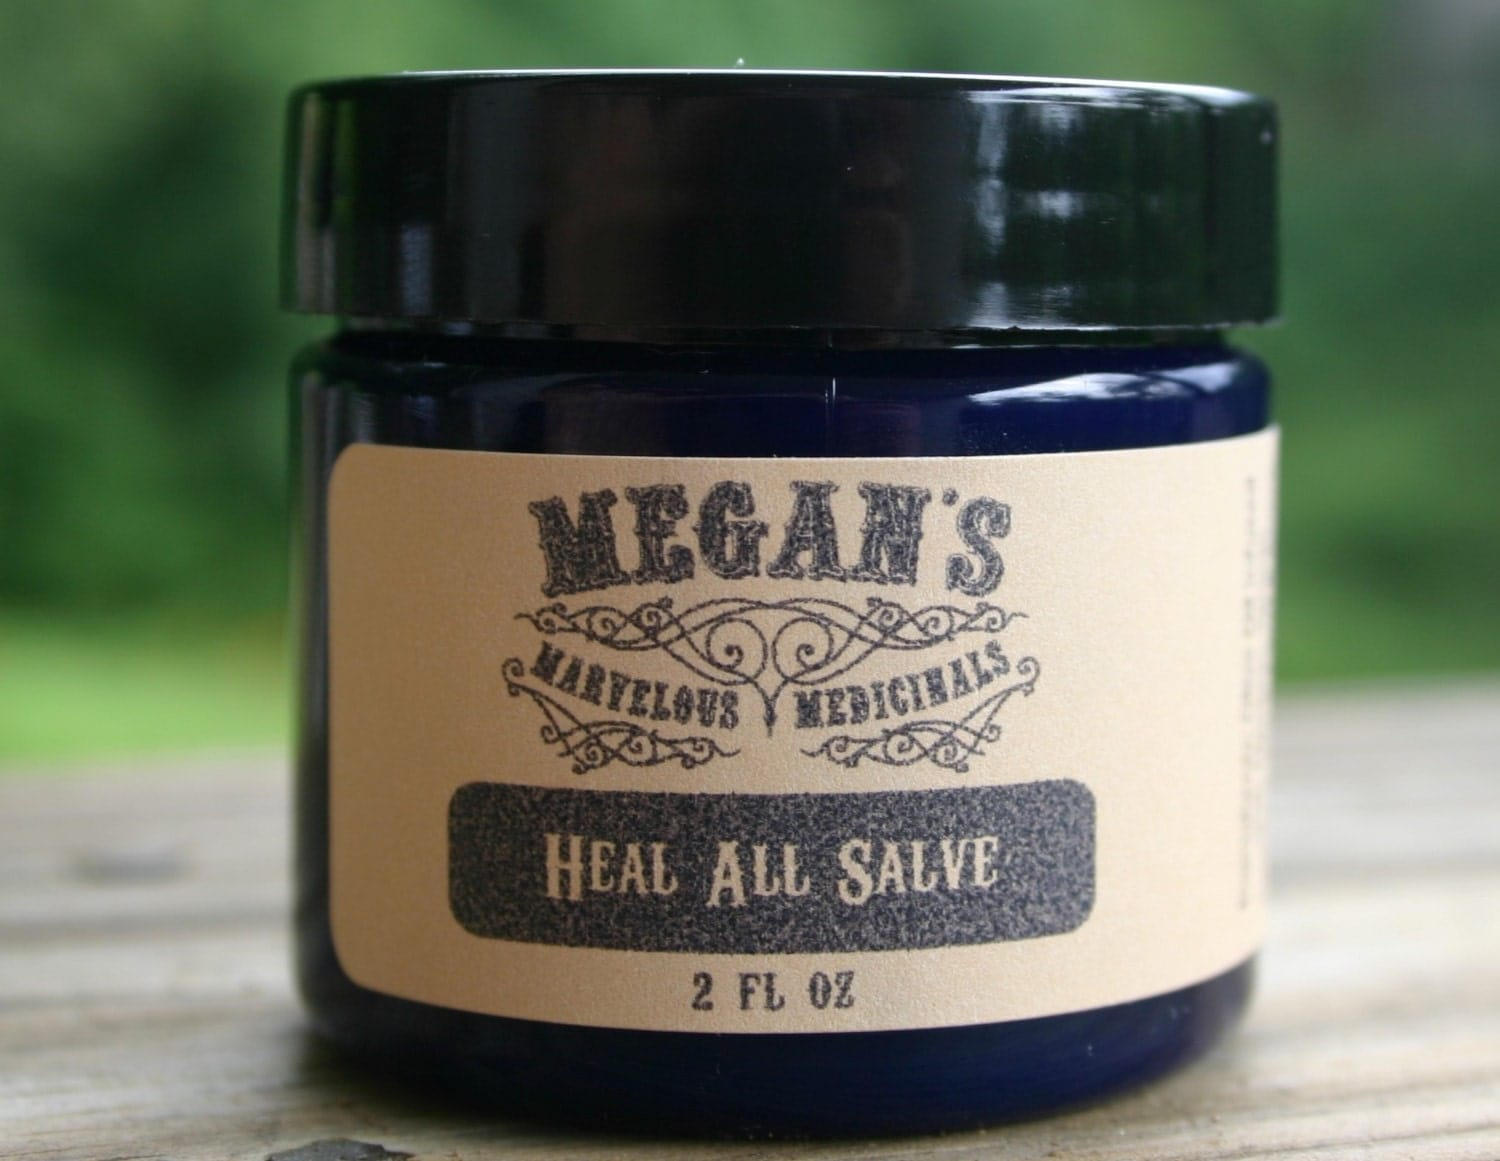 Heal all salve scrapes tattoos arnica comfrey yarrow for Can i use coconut oil on my tattoo